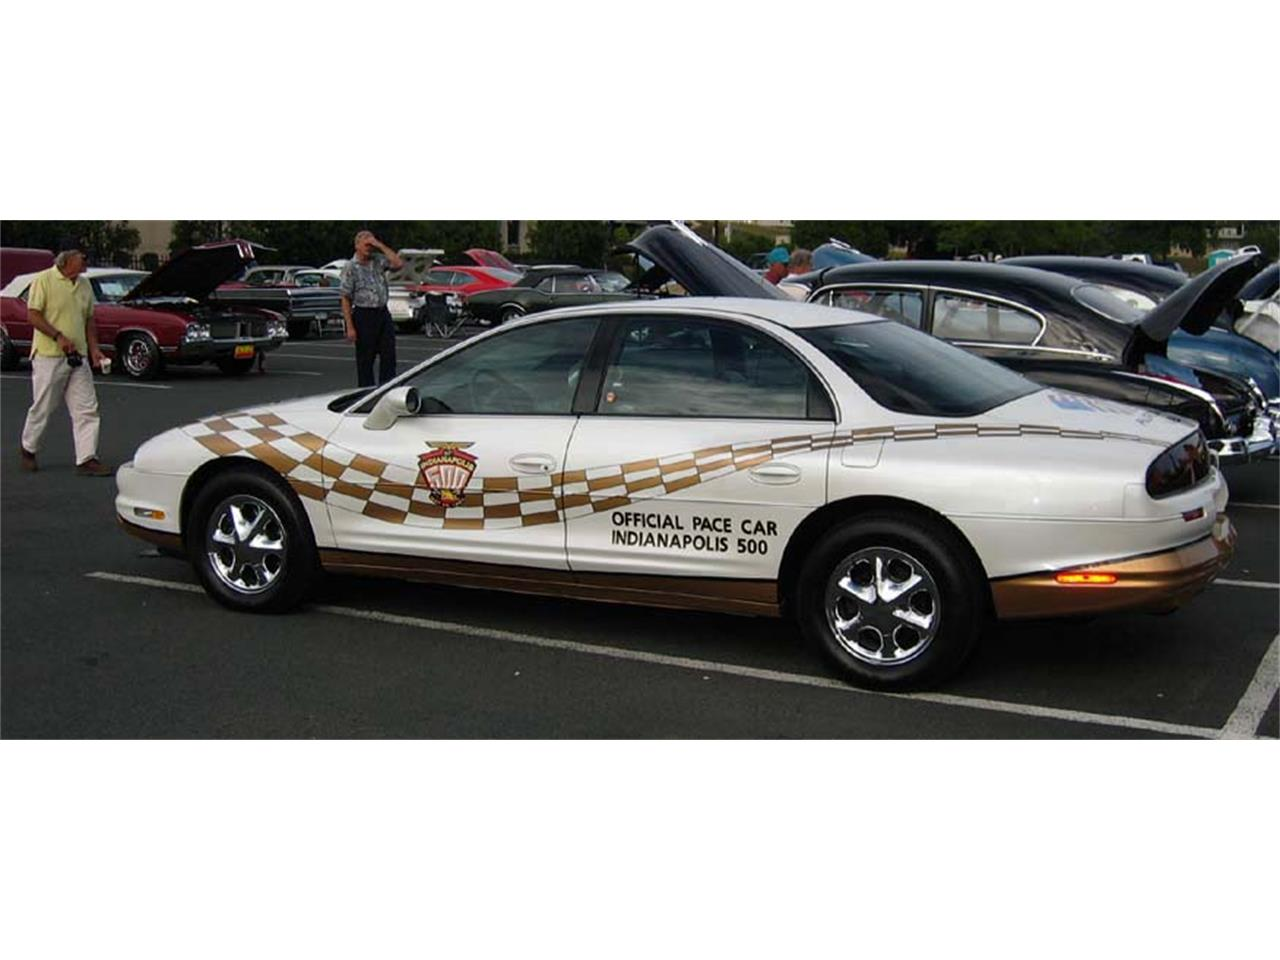 Large Picture of '97 Oldsmobile Aurora located in Edina Minnesota Offered by a Private Seller - MZCO